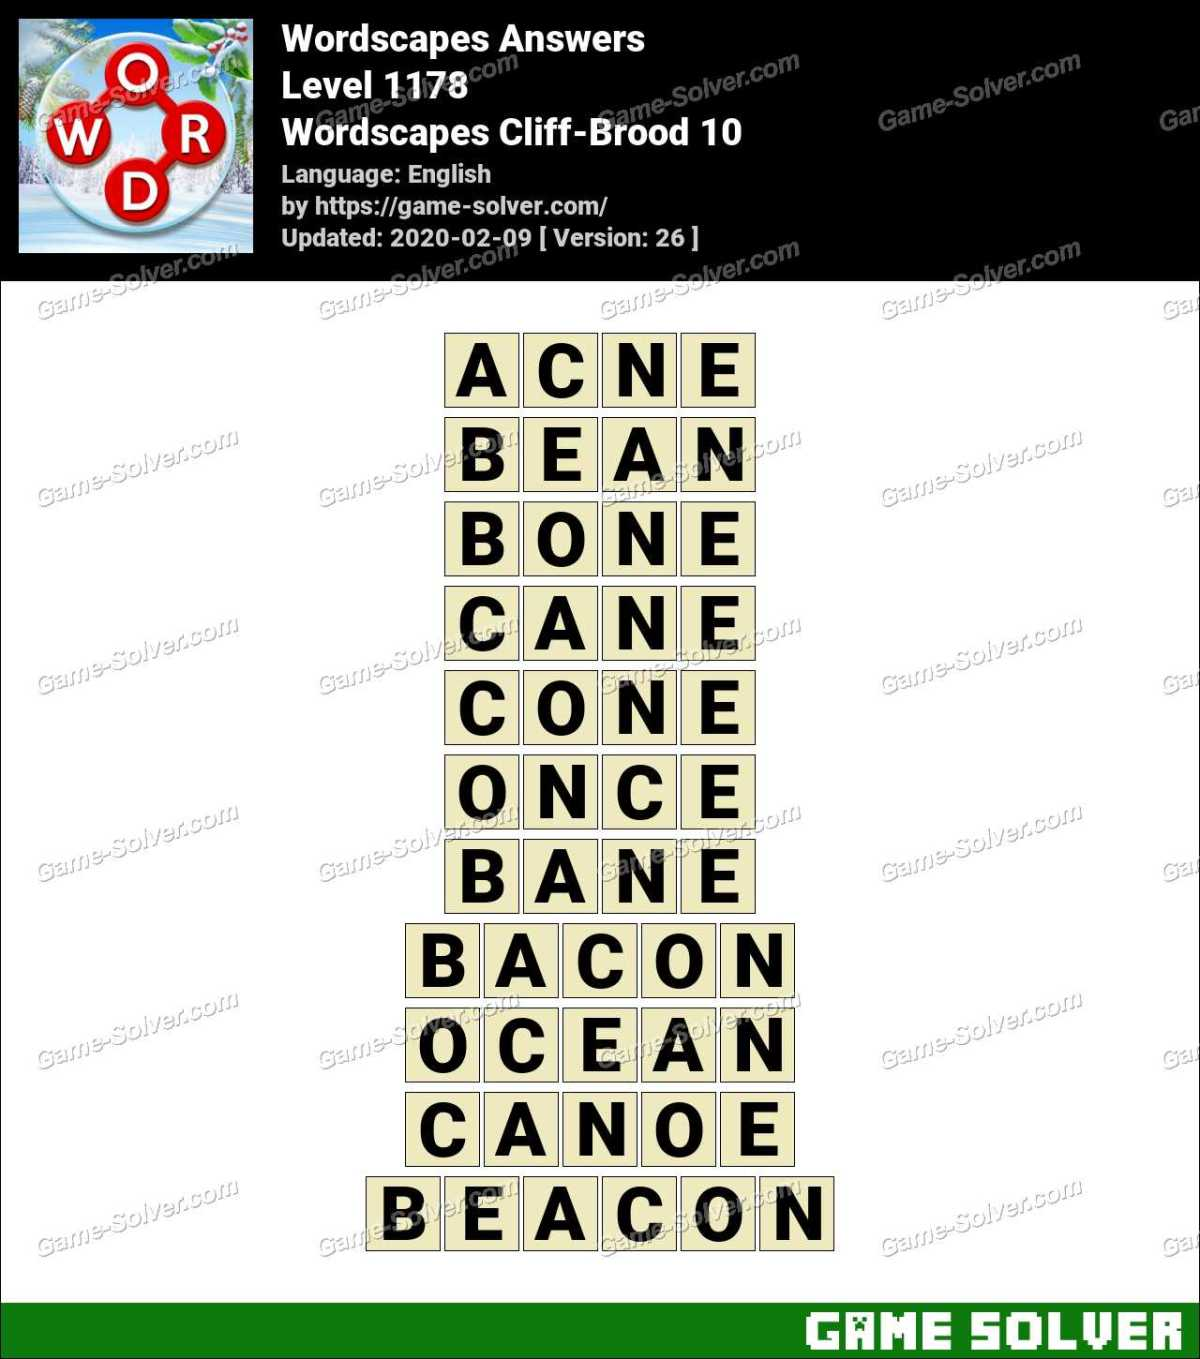 Wordscapes Cliff-Brood 10 Answers